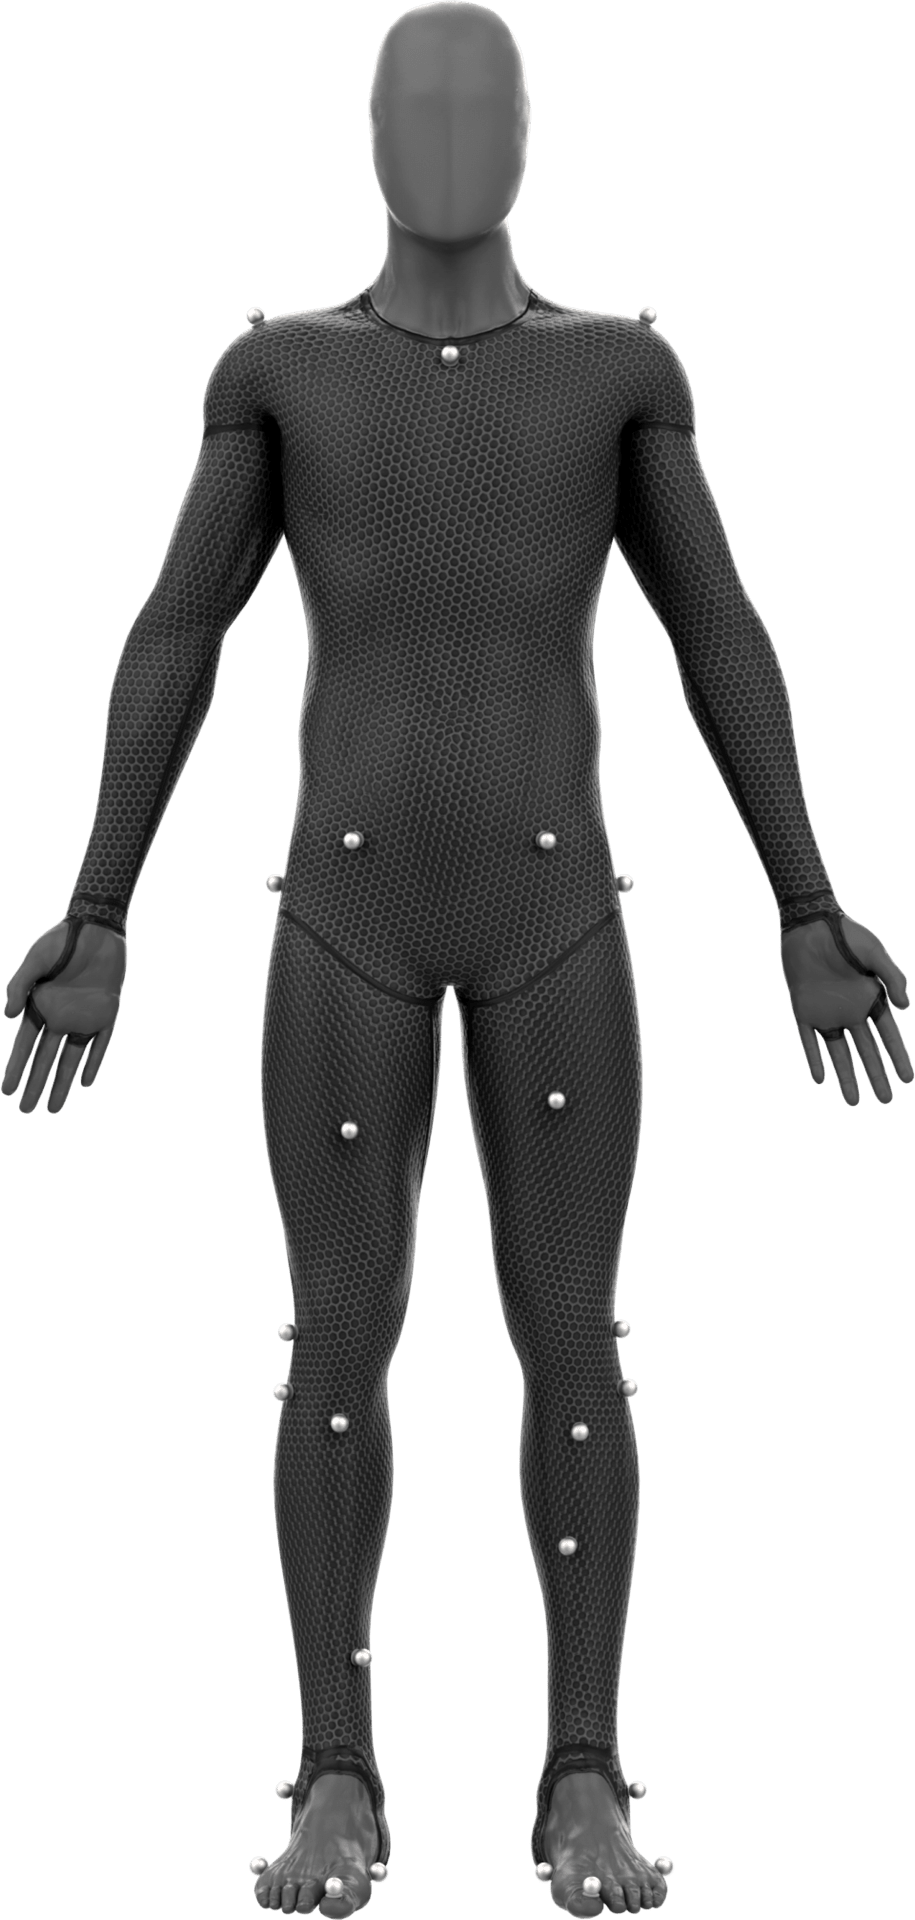 A figure in a-pose with motion capture reflectors on them